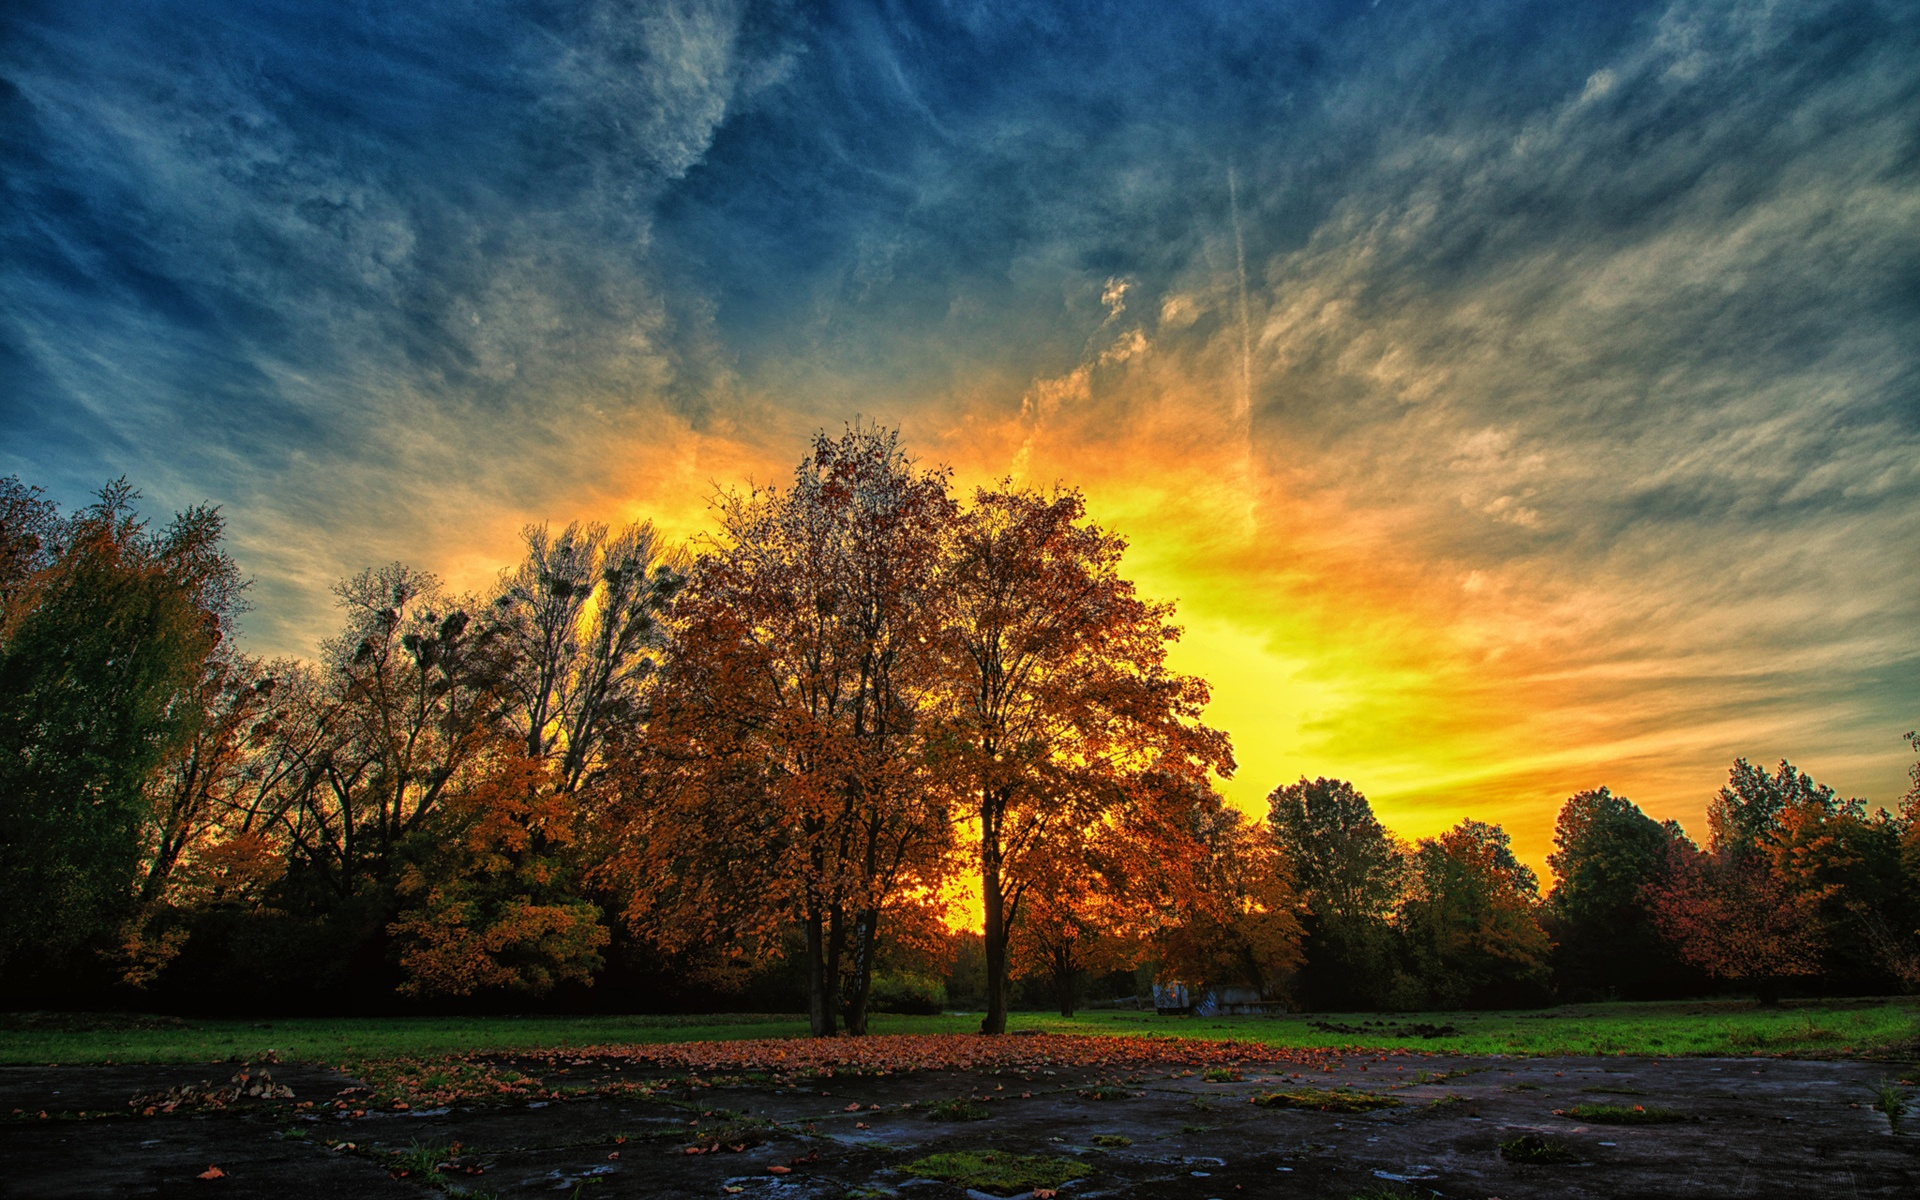 Autumn Tree Leaf Fall Animated Wallpaper Perfect Autumn Sunset Amp Trees Wallpapers Perfect Autumn